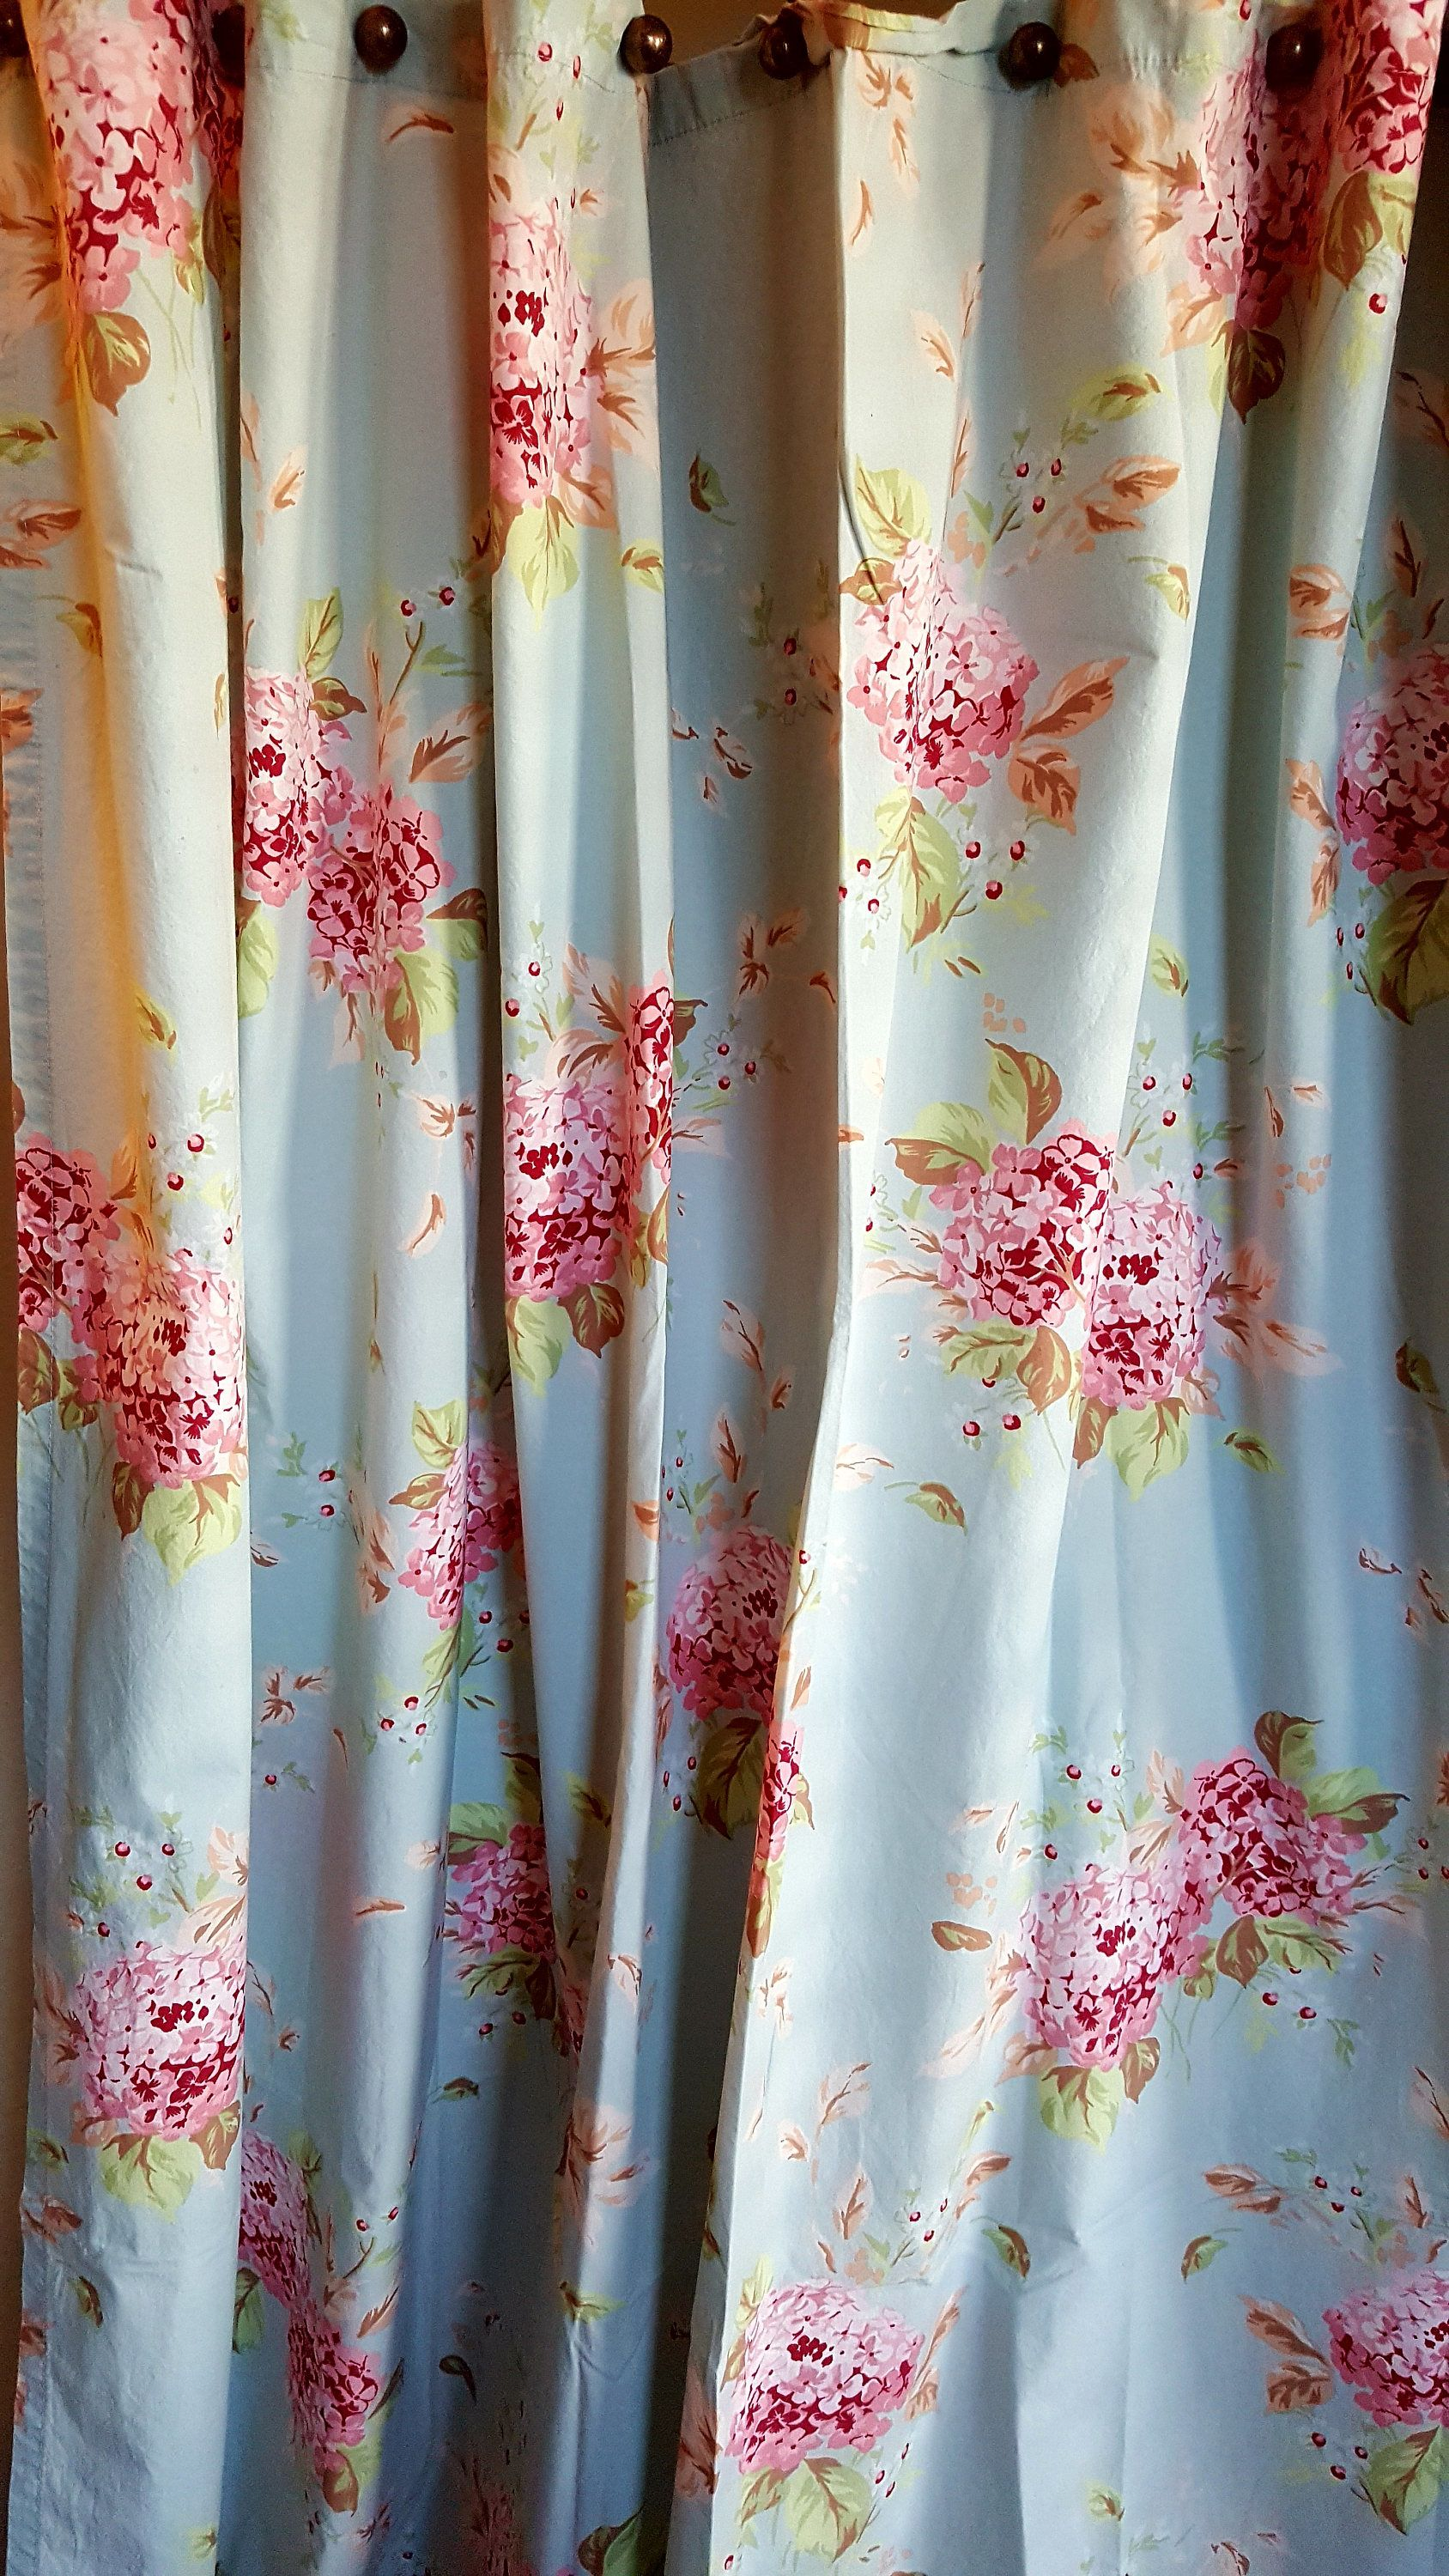 SHOWER CURTAIN Rachel Ashwell Simply Shabby Chic HYDRANGEAS Super Pretty Ruffled Bottom Great Condition By BeautyFromThePast On Etsy